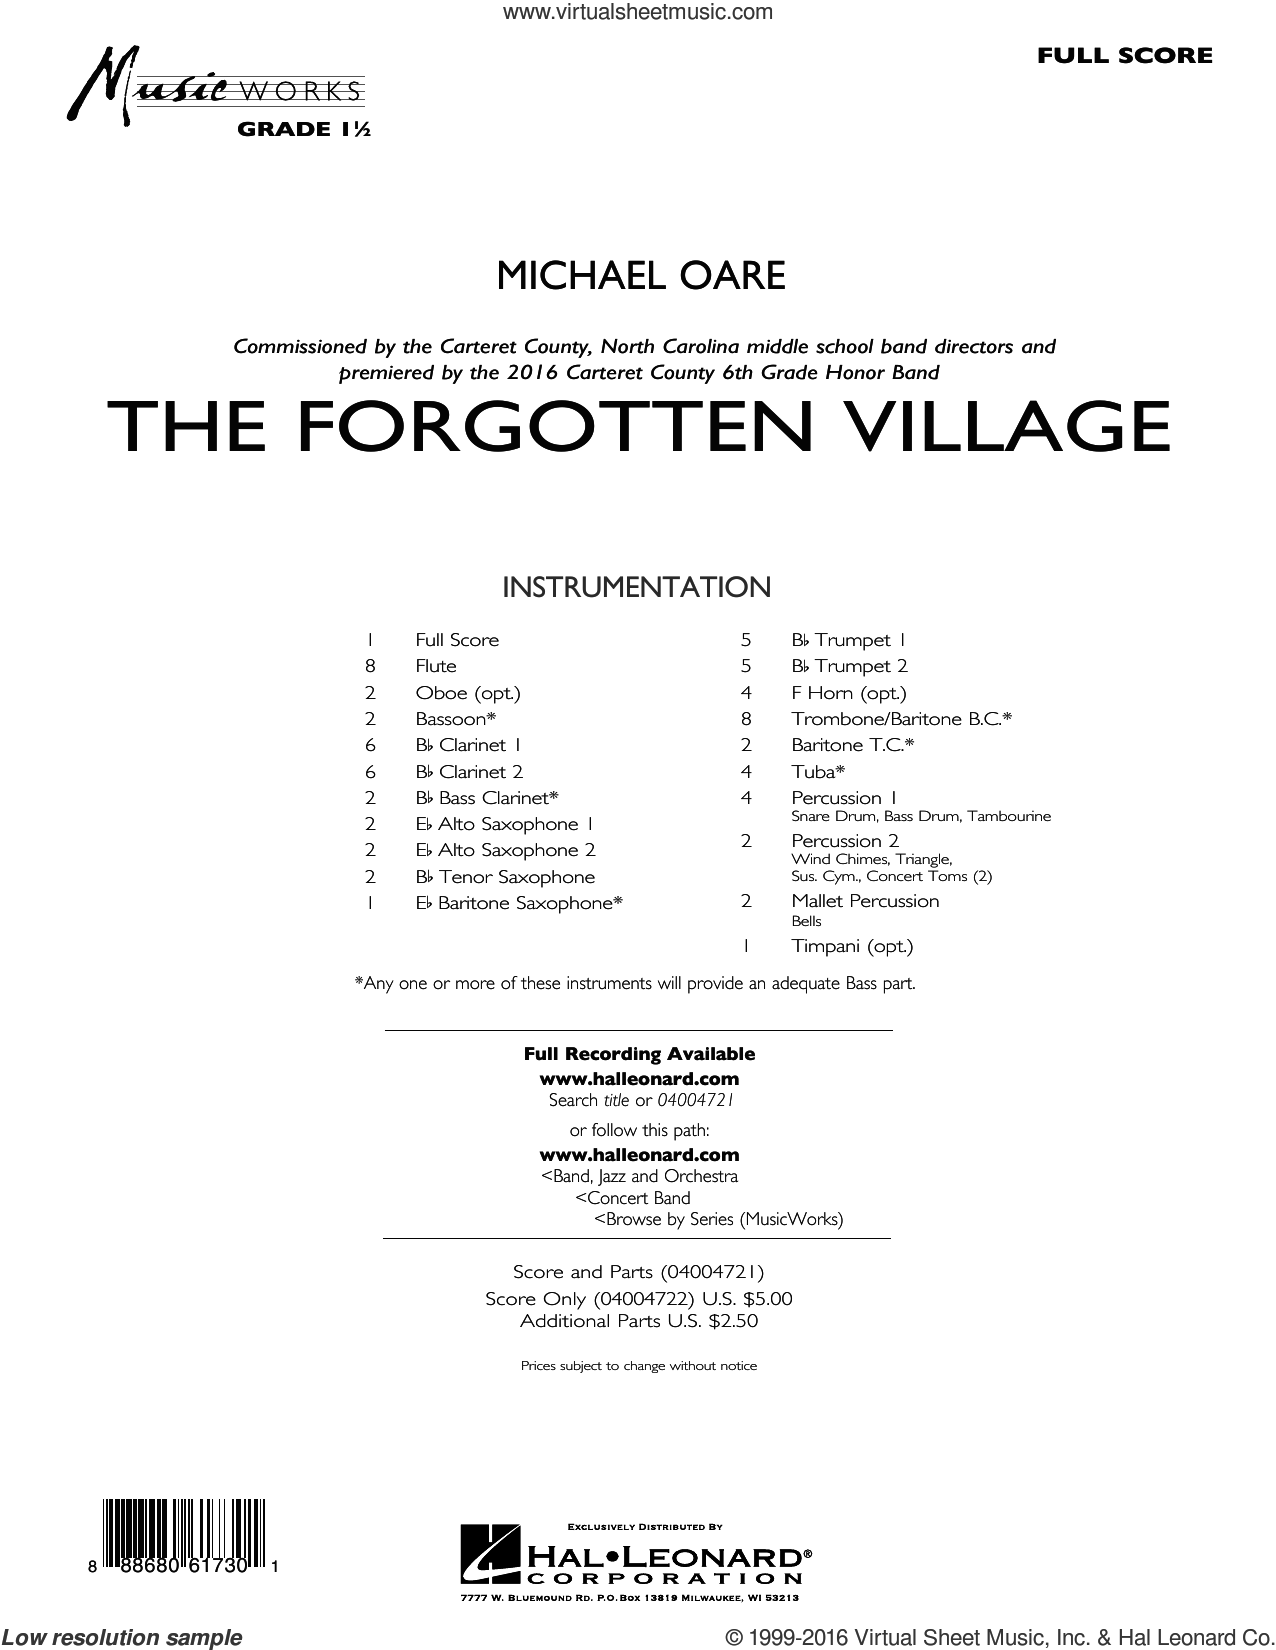 The Forgotten Village (COMPLETE) sheet music for concert band by Michael Oare